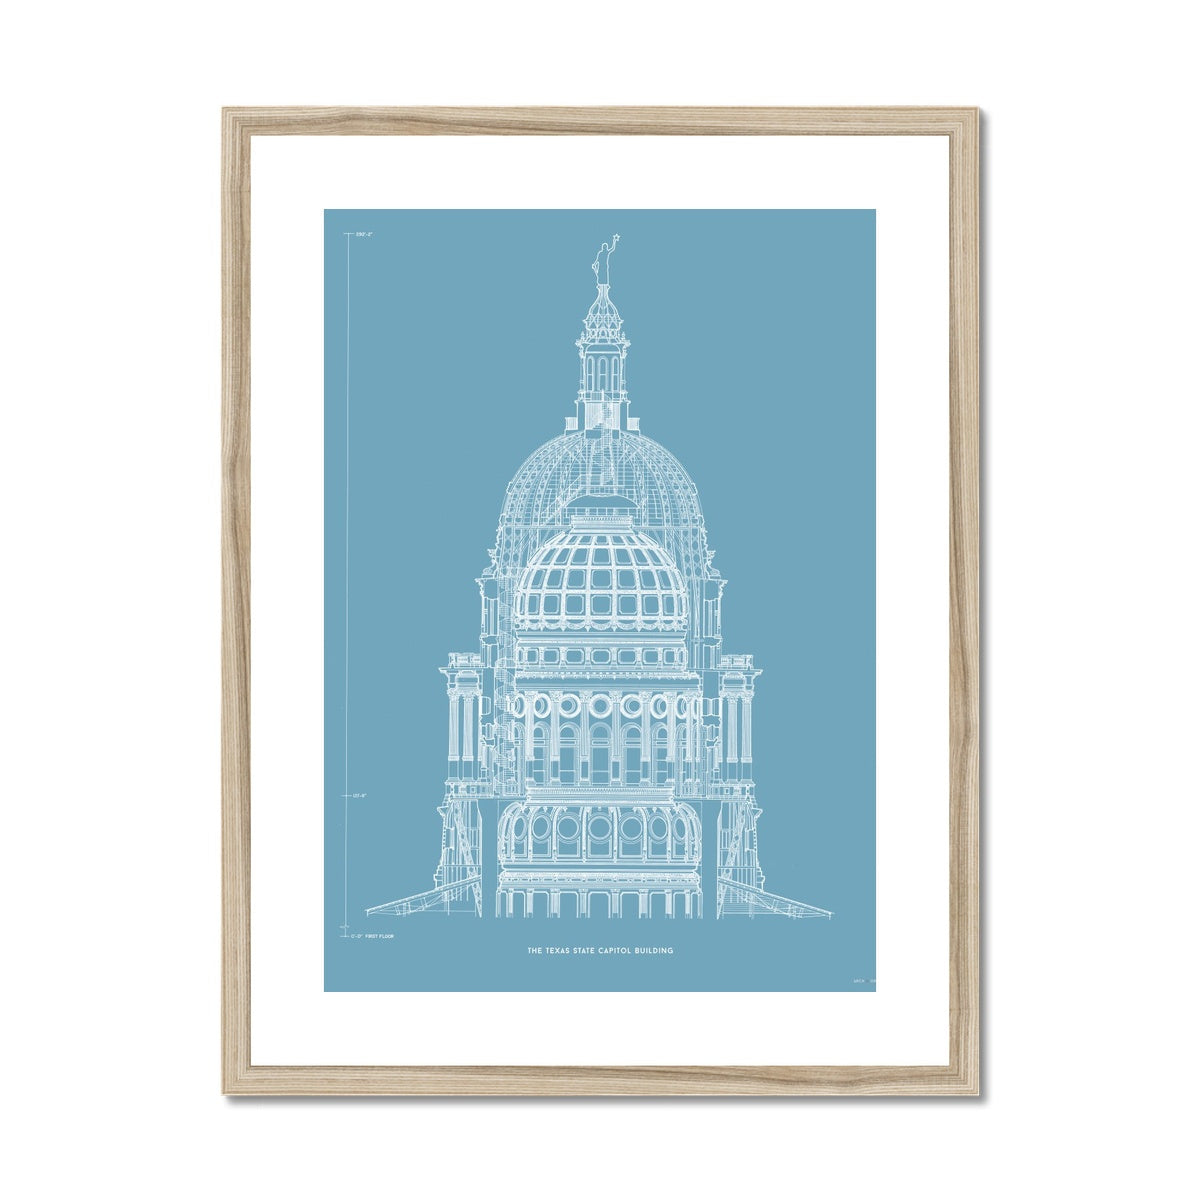 The Texas State Capitol Building - Dome Cross Section - Blue -  Framed & Mounted Print